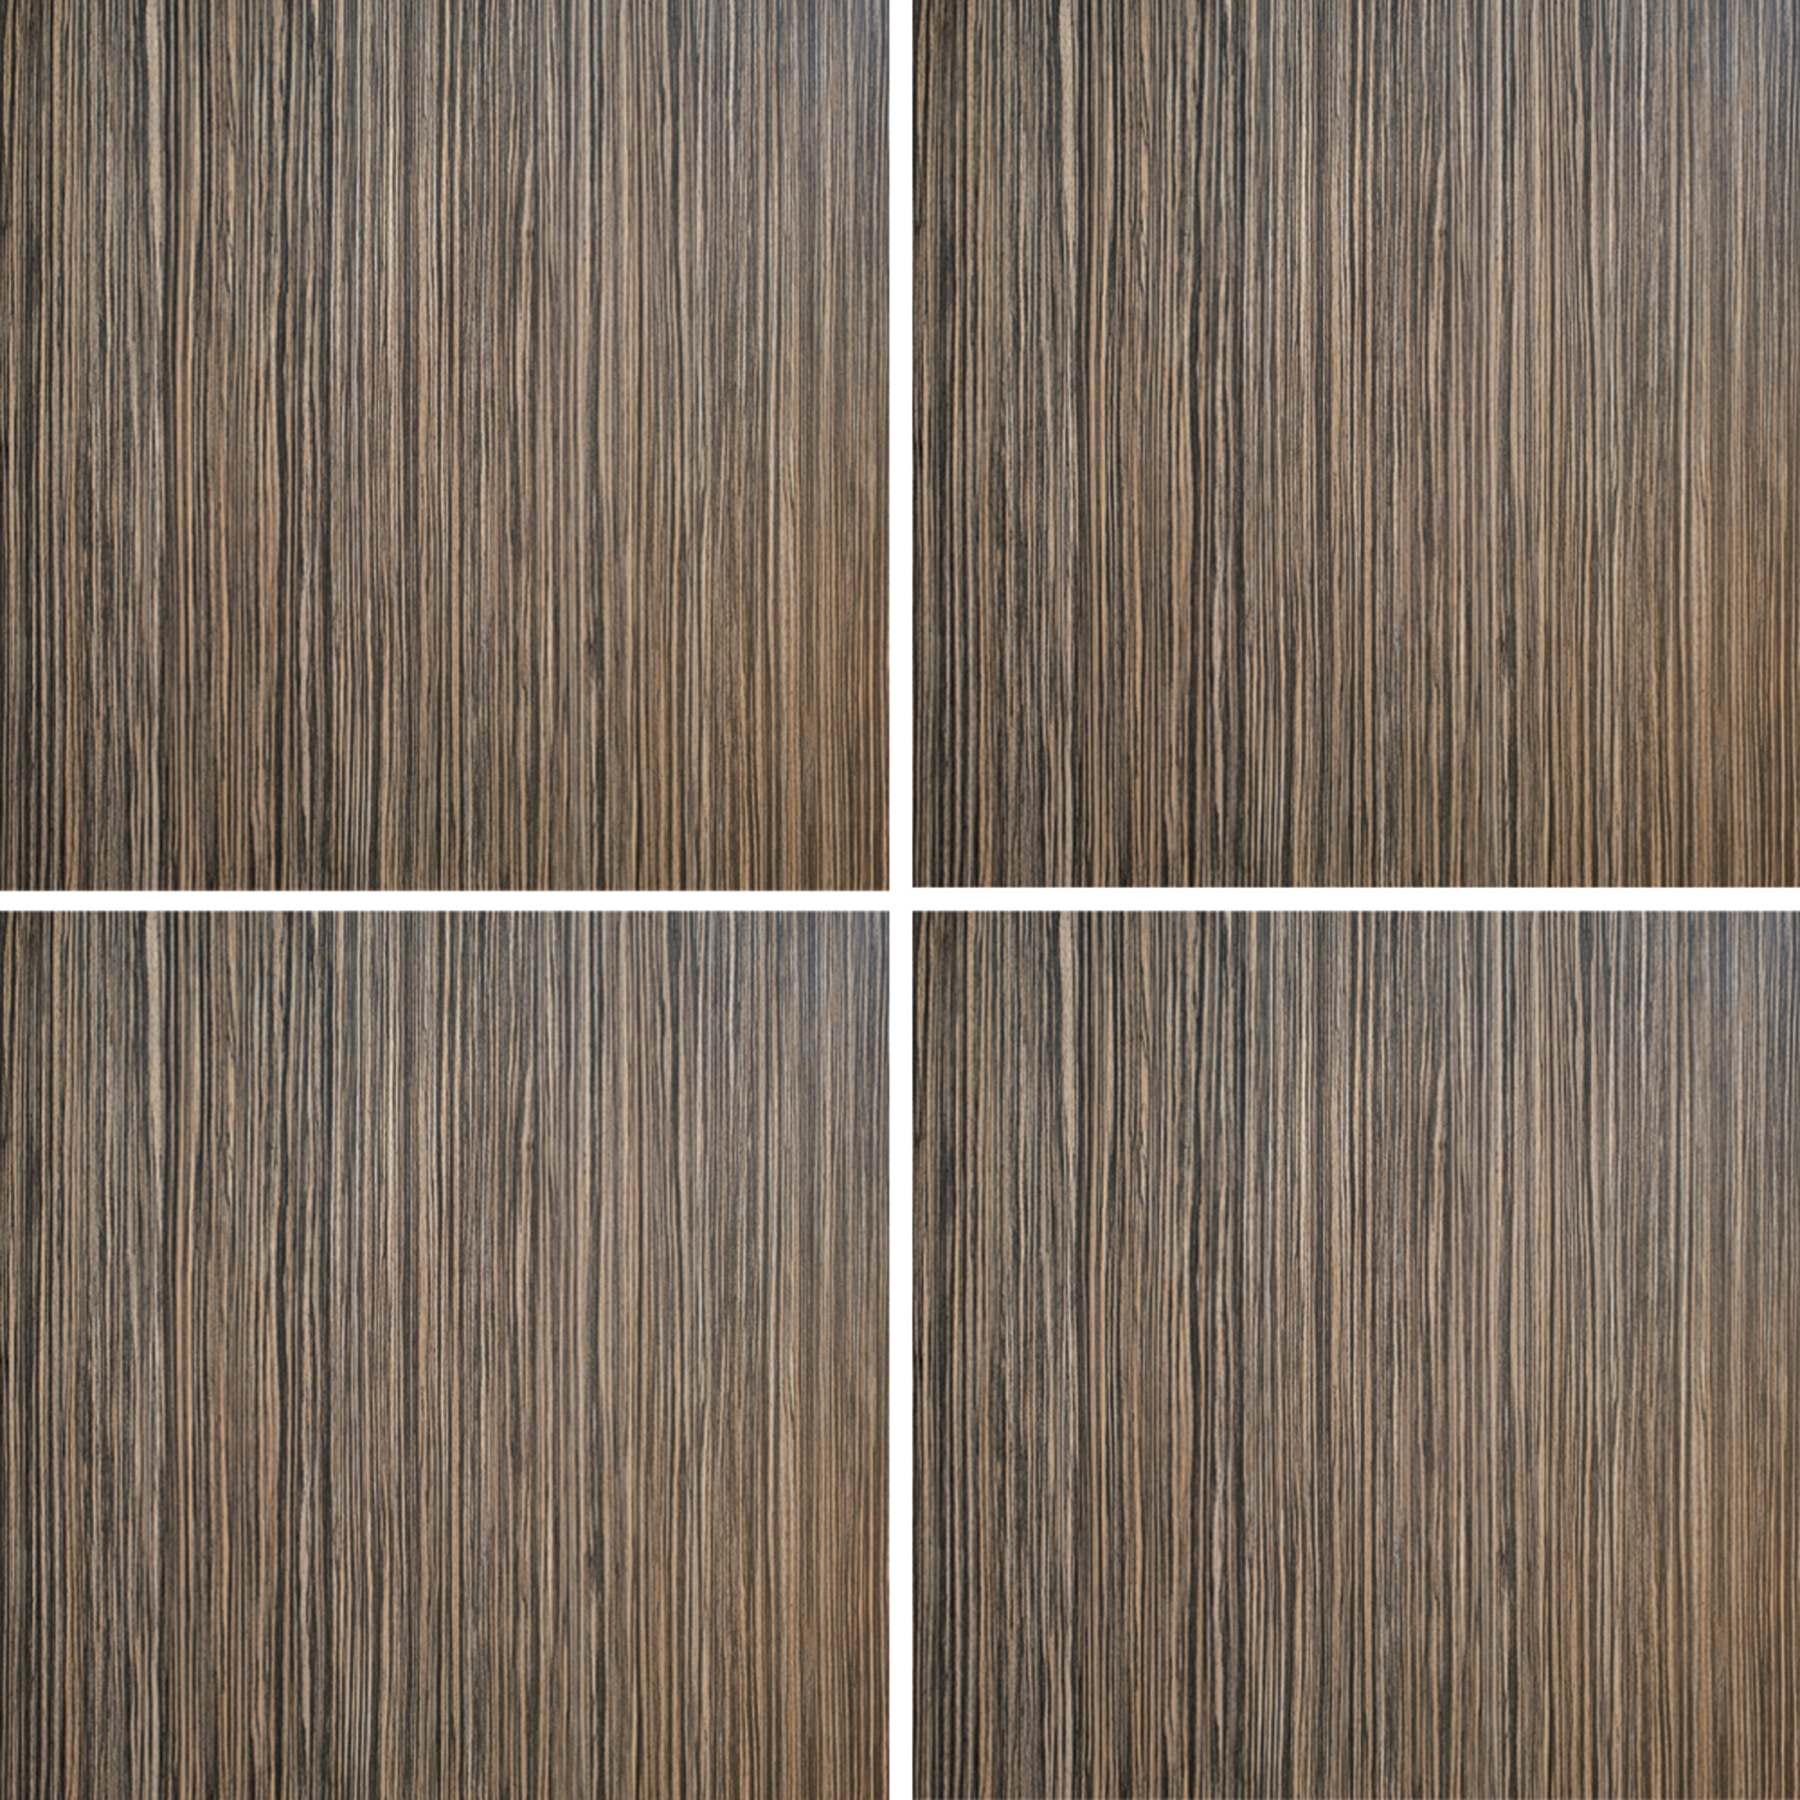 wooden decorative wall panels photo - 7